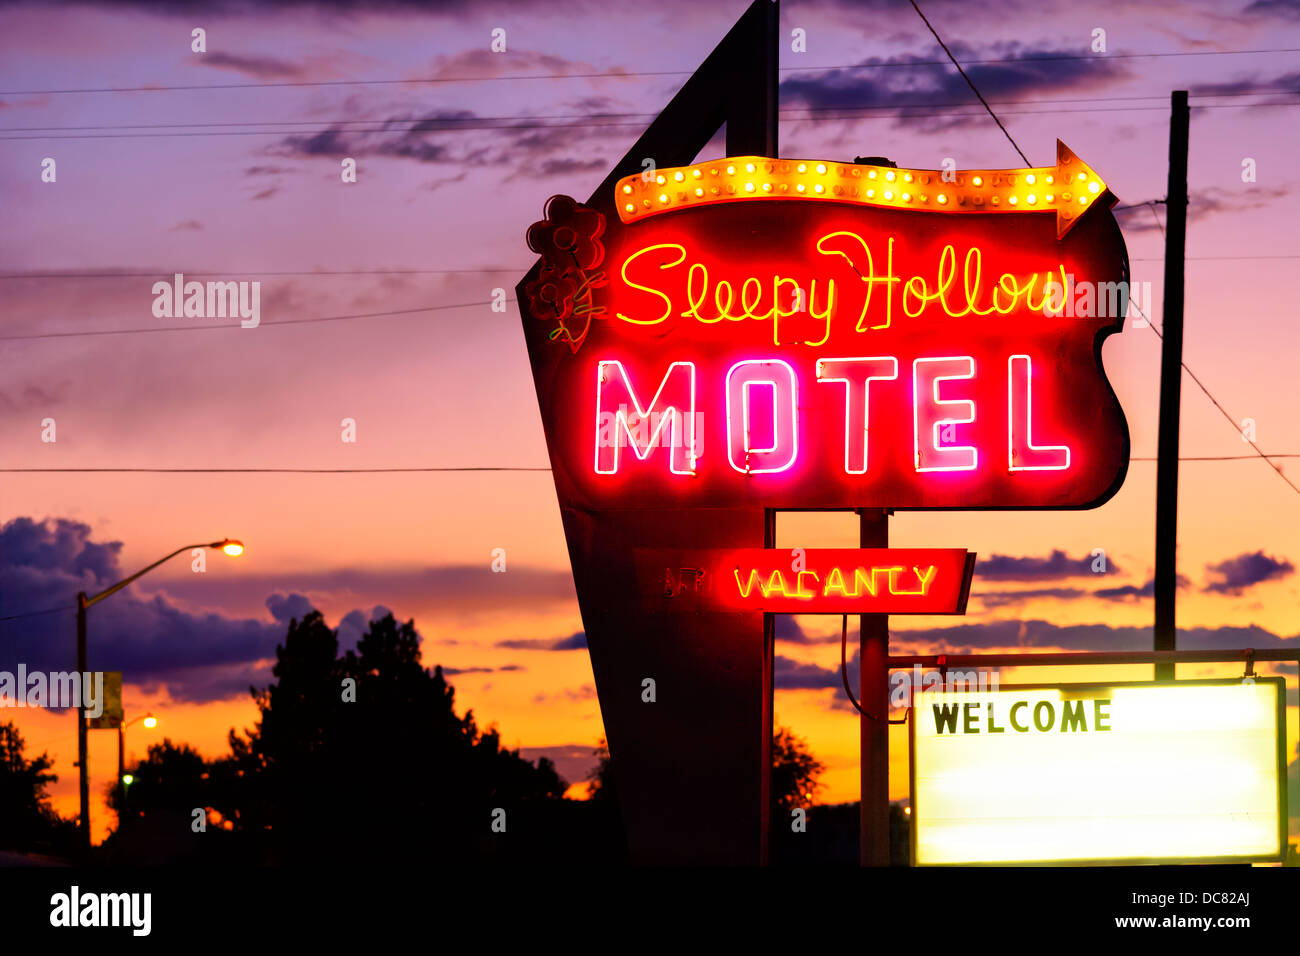 Bright neon sign for the Sleepy Hollows Motel with Vacancy and Welcome signs at dusk. Off the I-70 in Green River - Stock Image